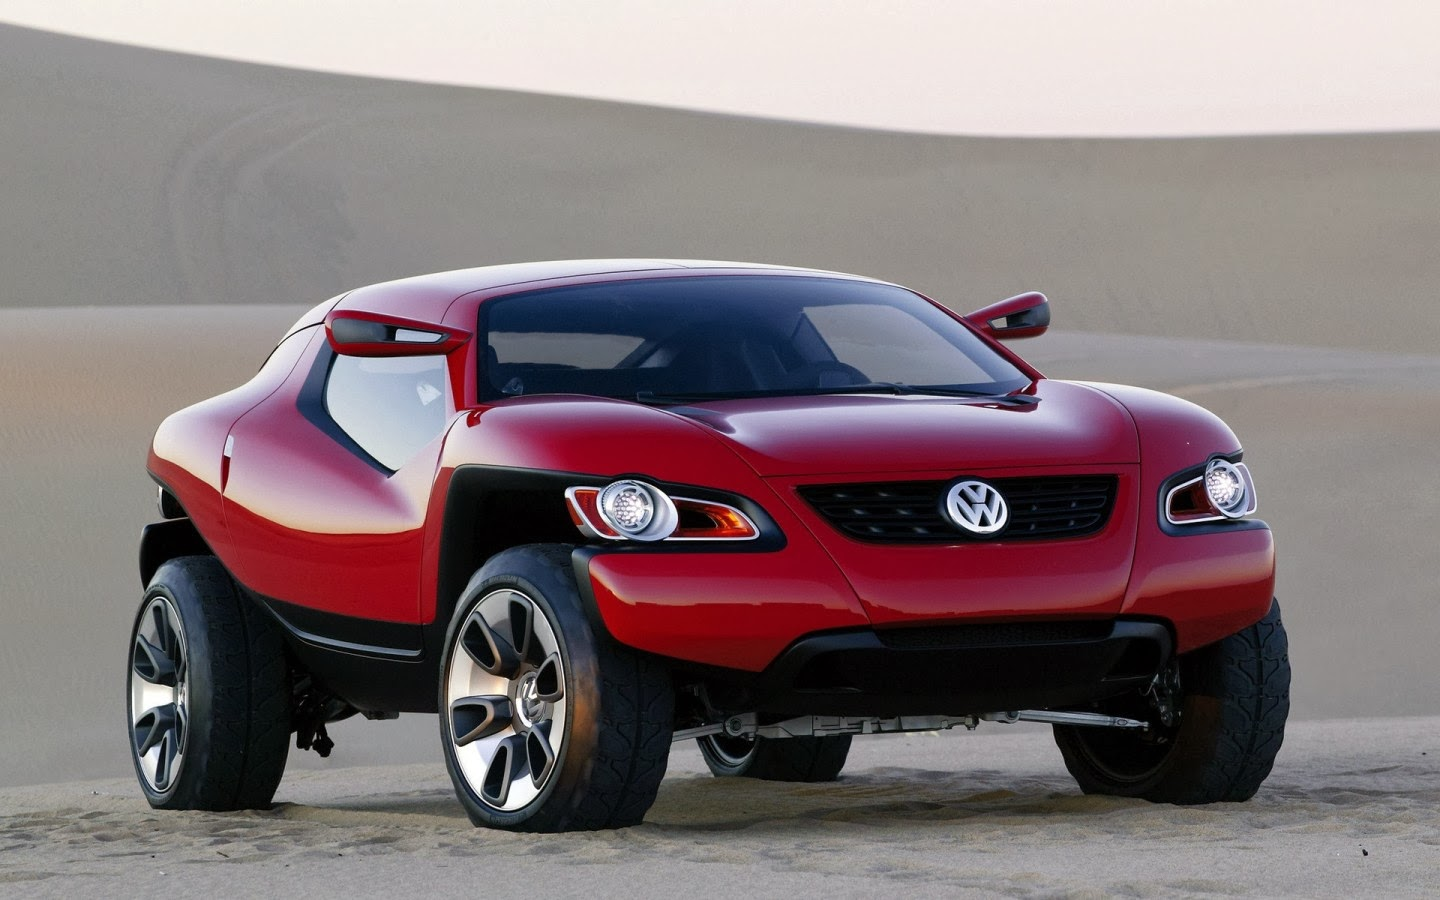 new car release australia 2014Full HD New car release dates 2014 australia Wallpapers Android